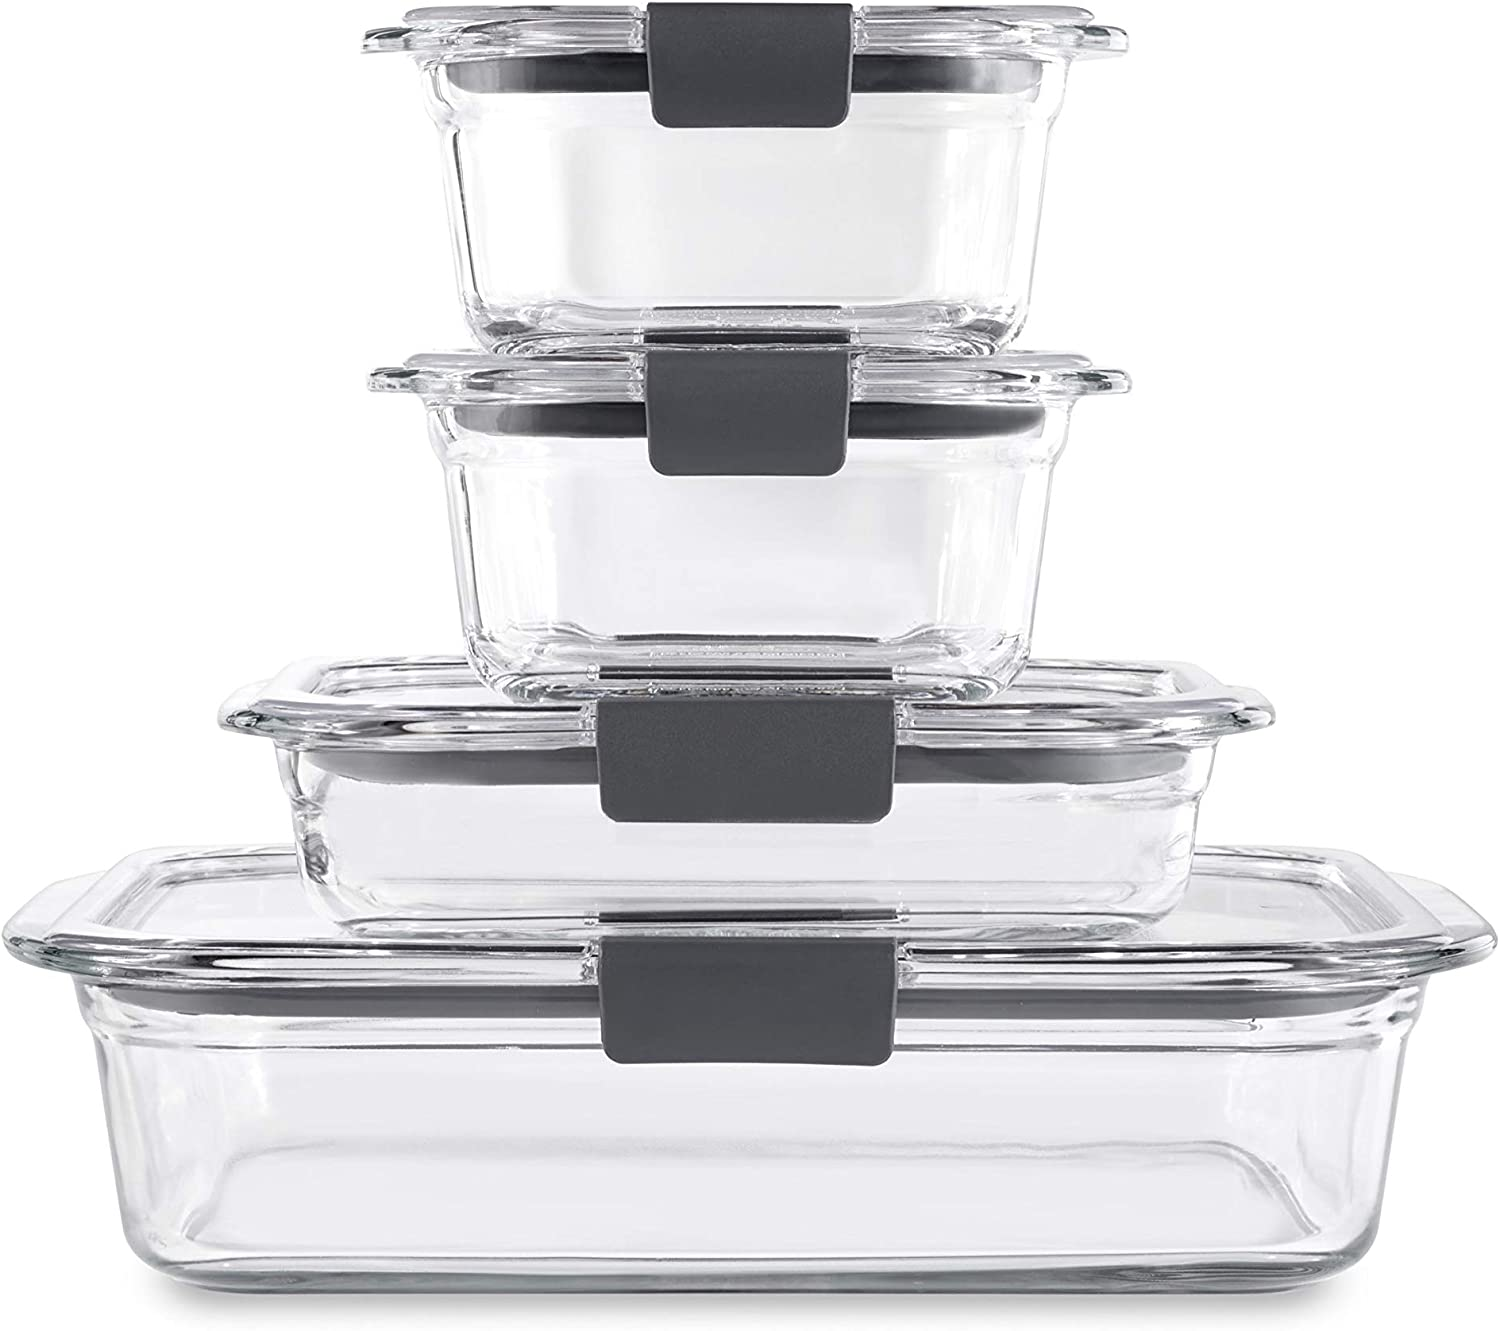 Rubbermaid Brilliance Glass Storage Set of 4 Food Containers with Lids (8 Pieces Total), 4-Pack, Clear